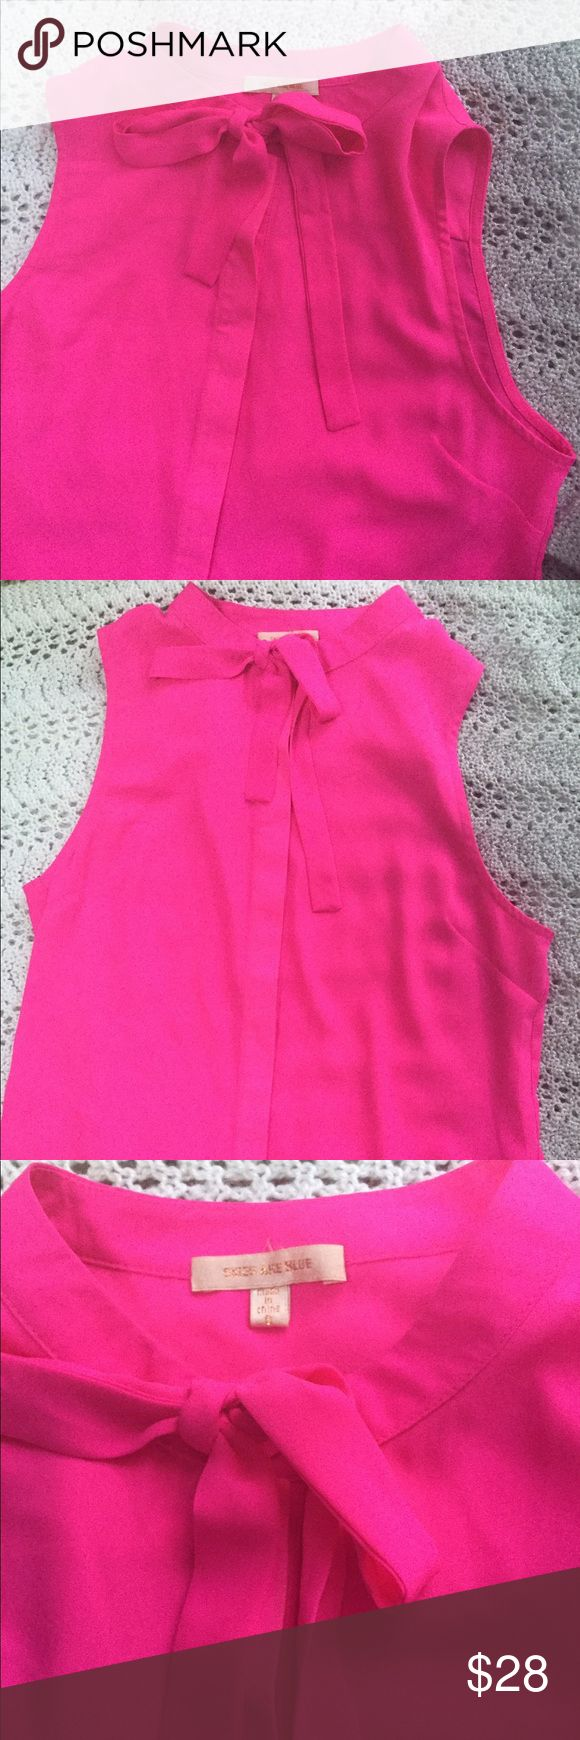 NWOT Neon Pink Blouse Brand new, never worn hot pink blouse. It buttons all the way up (buttons are hidden) and has two gold loops at the top where it ties. Super cute, size S. Skies Are Blue Tops Blouses